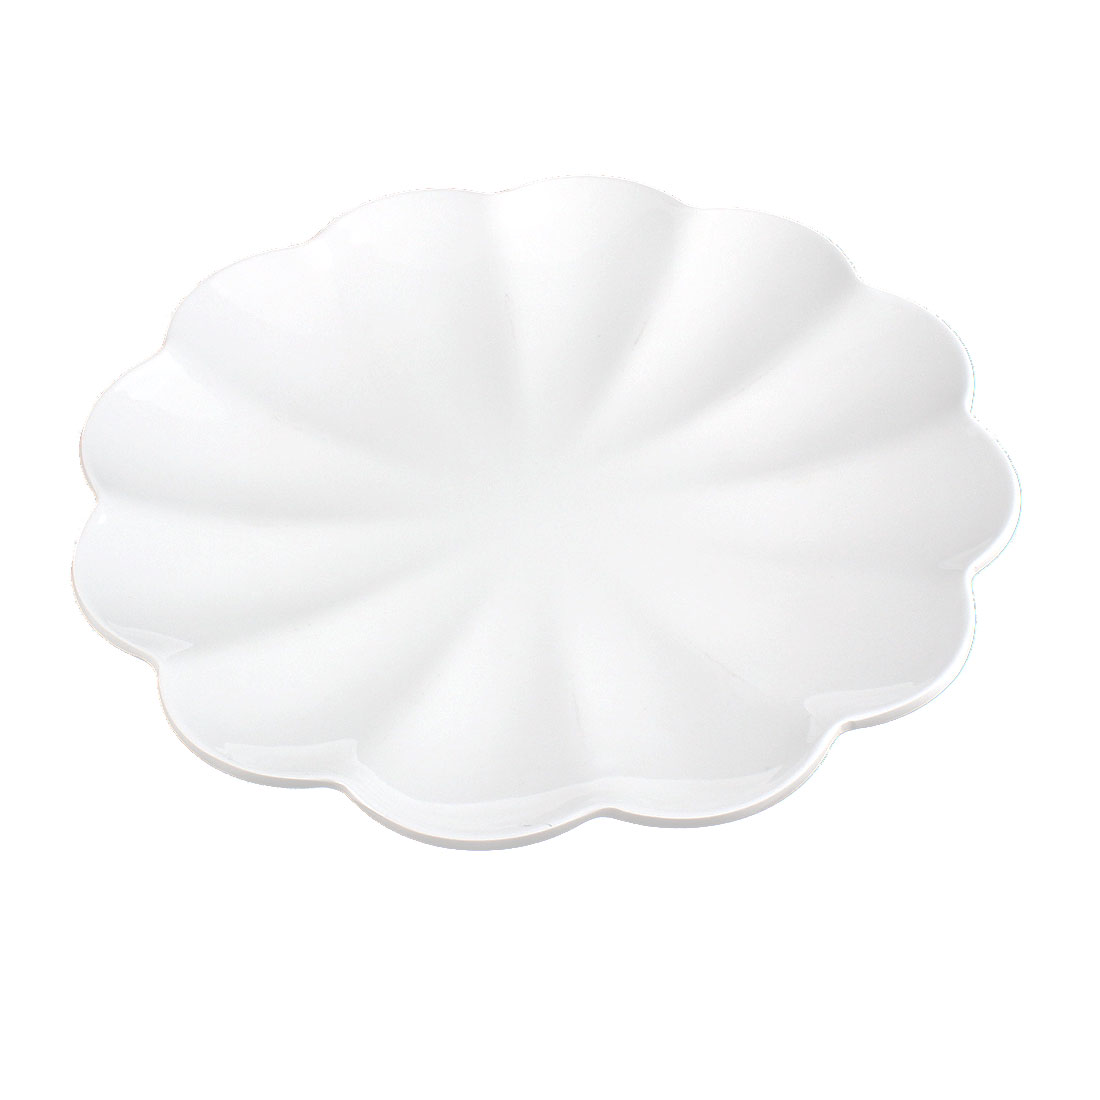 Home Restaurant Plastic Wavy Edge Lunch Food Dish Plate 10 Inch Dia